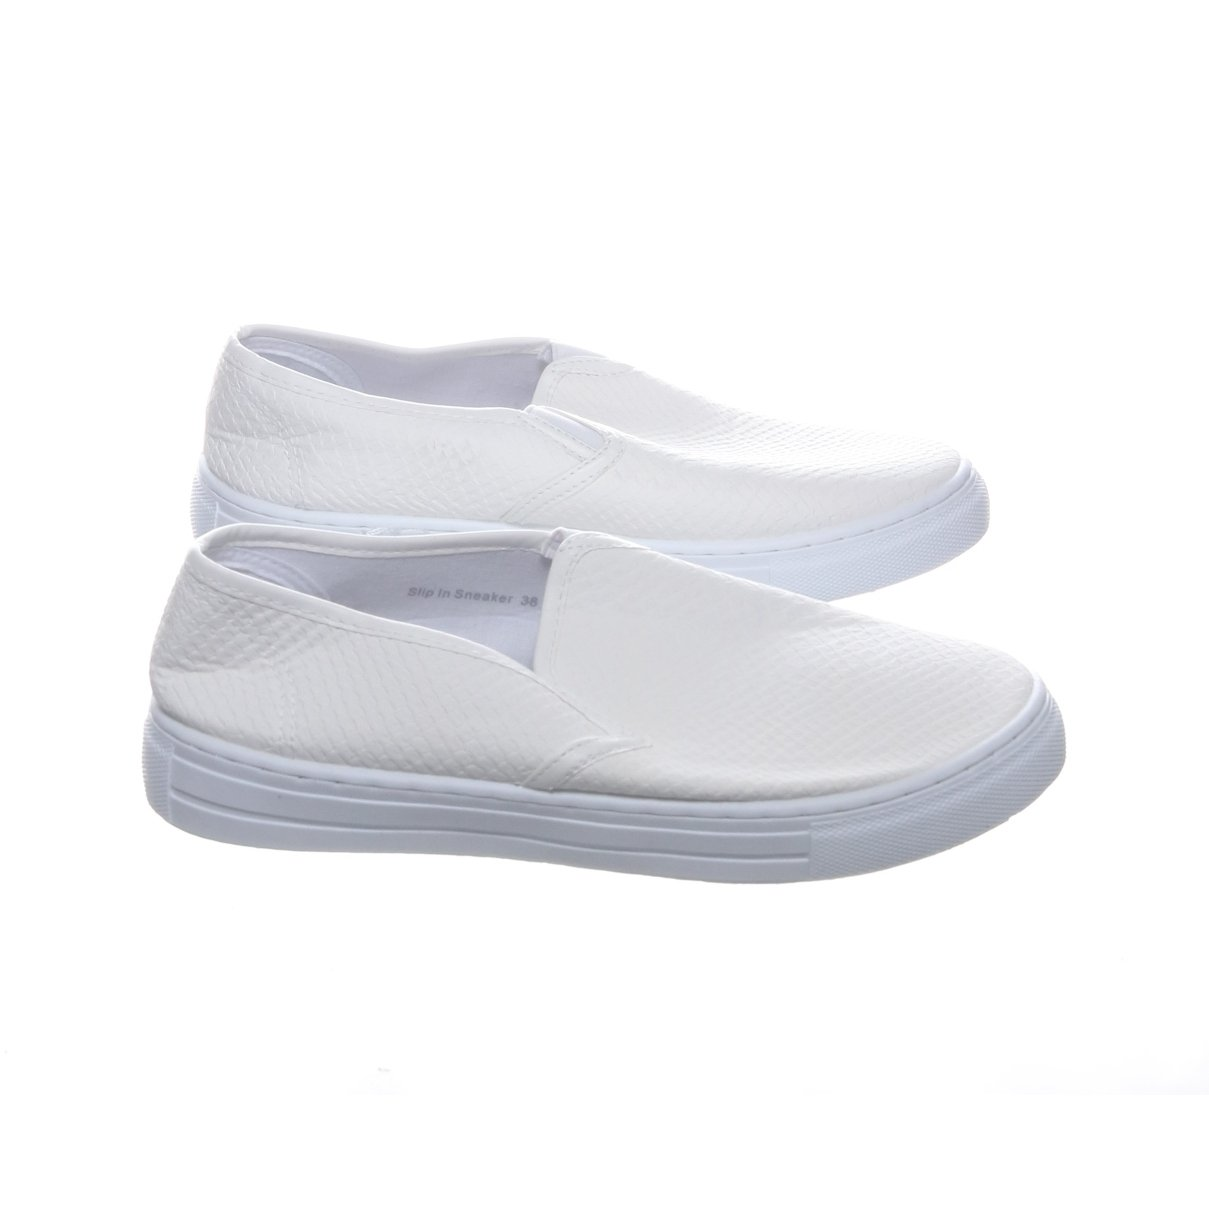 NLY Shoes, Slip-Ons, Strl: 38, Skinnimitation, Benvit